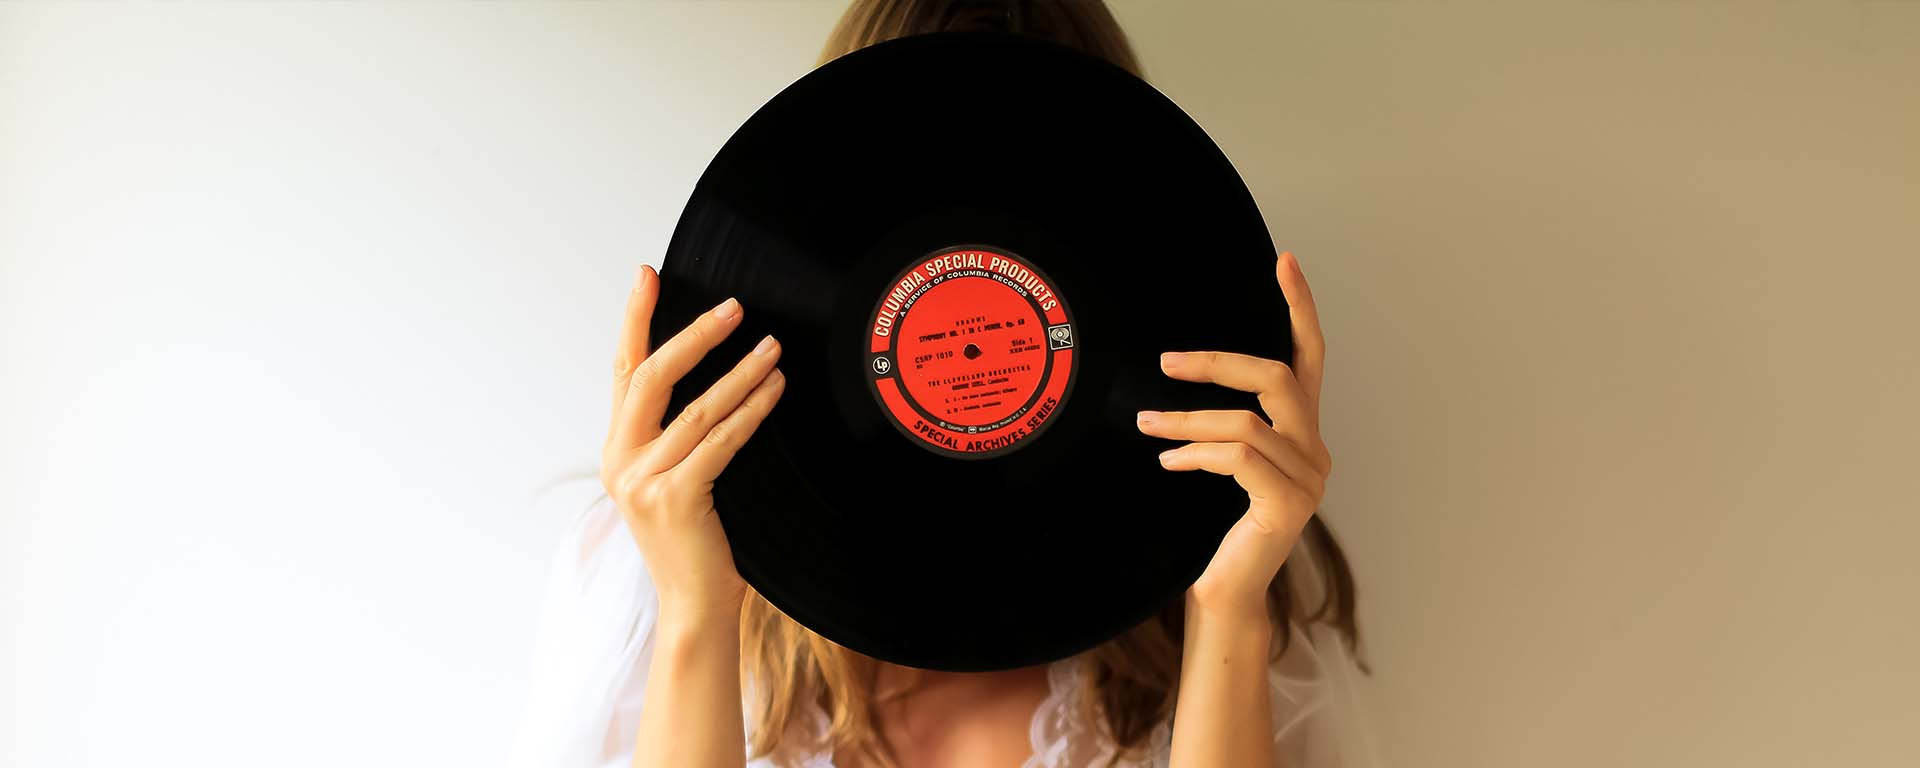 A white woman holds up a record over her face